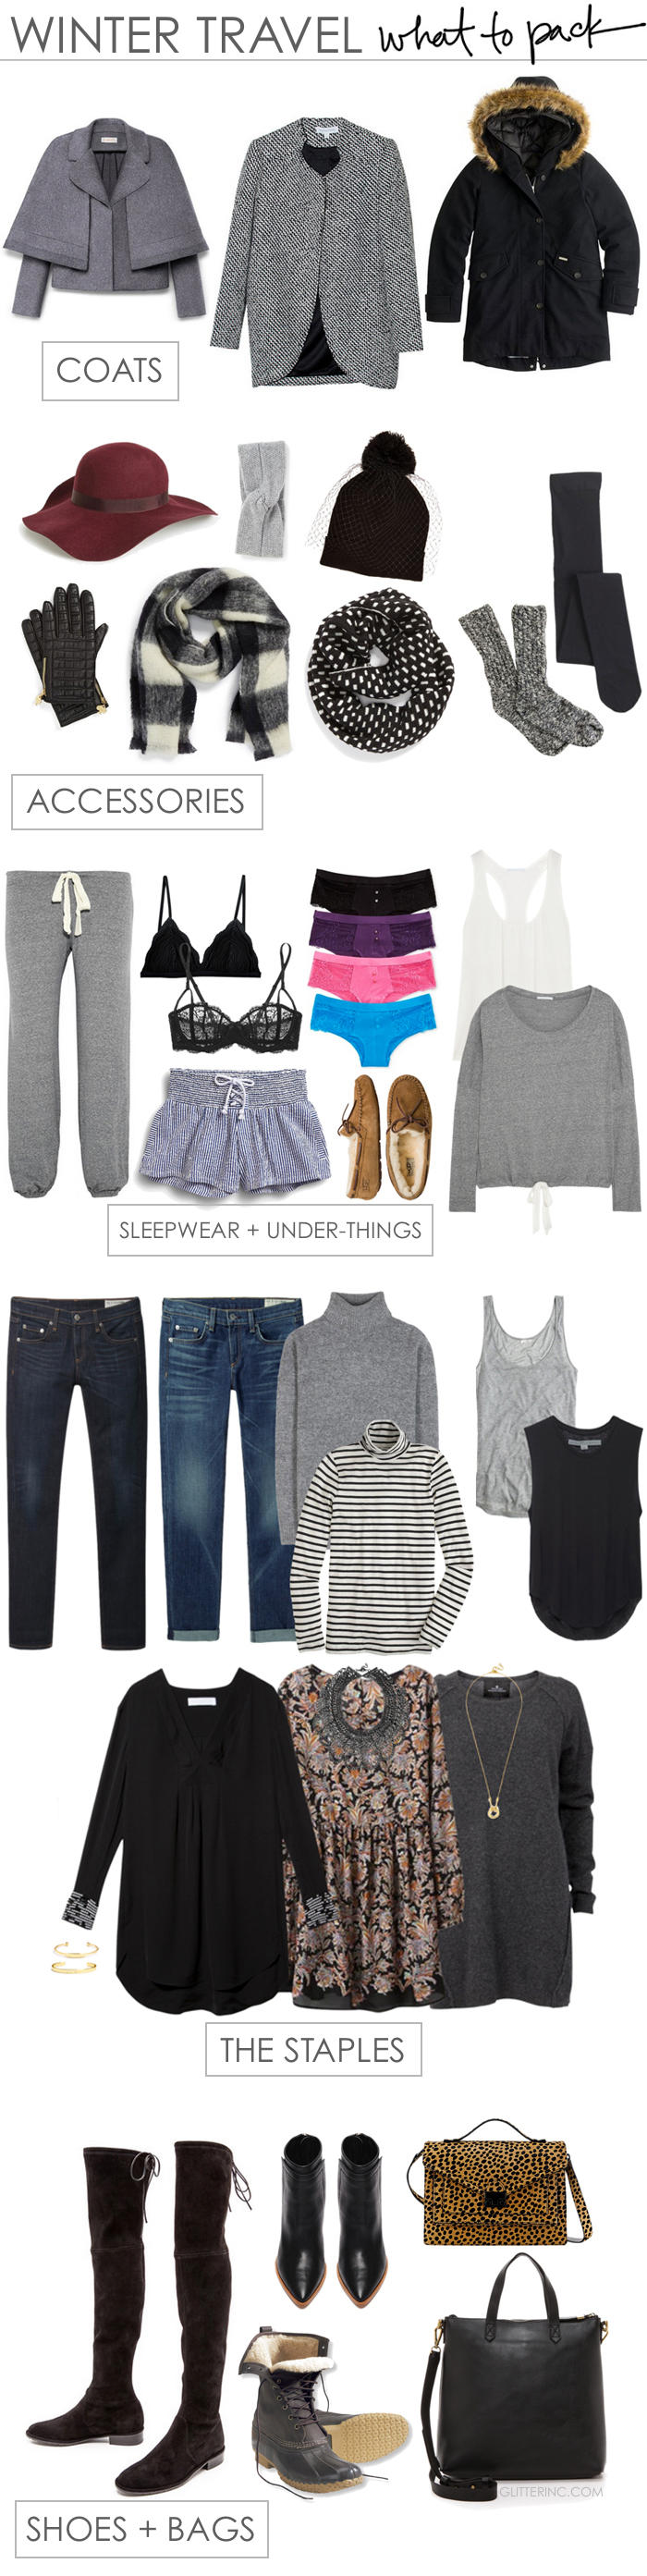 Winter-Travel-Packing-List-what-to-pack-with-ly.st---glitterinc.com